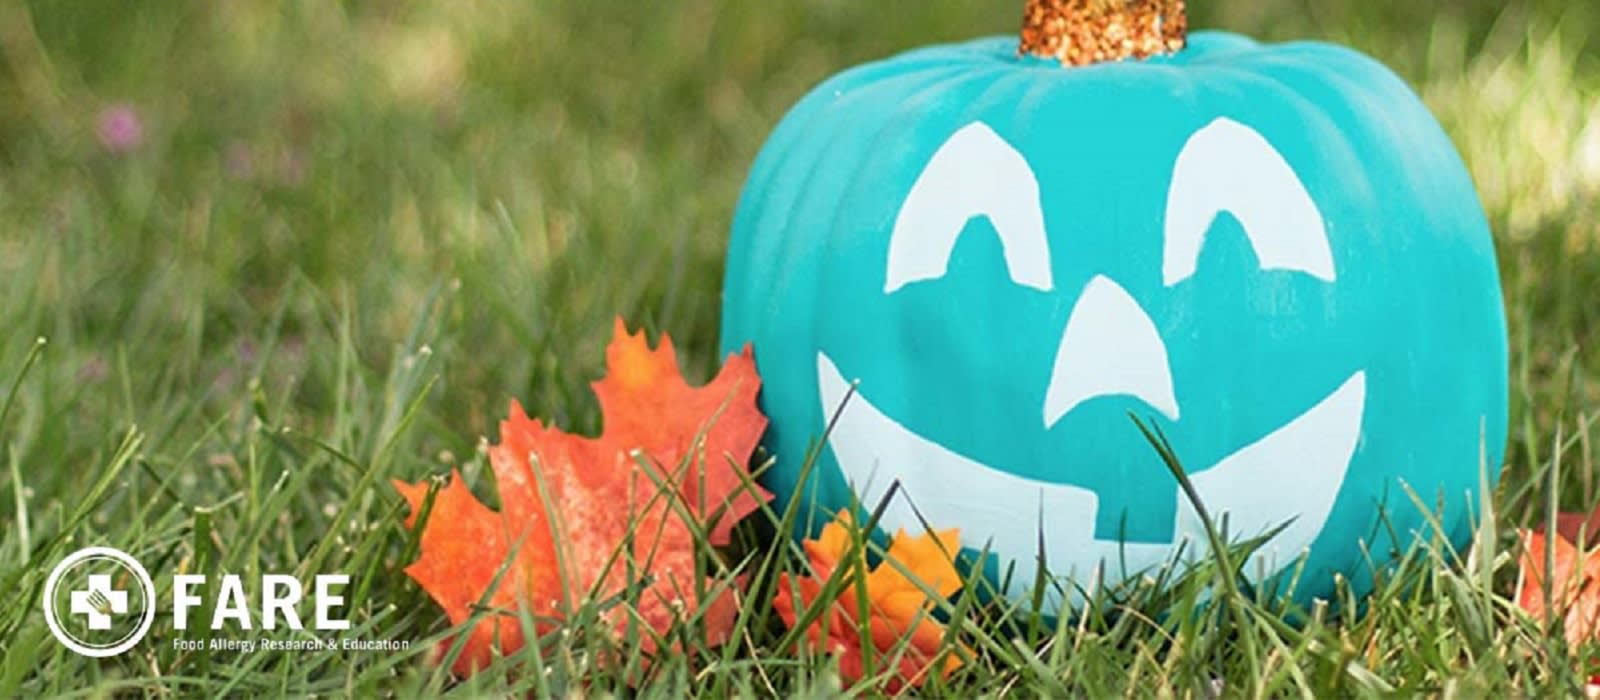 Teal pumpkin as part of the Teal Pumpkin Project